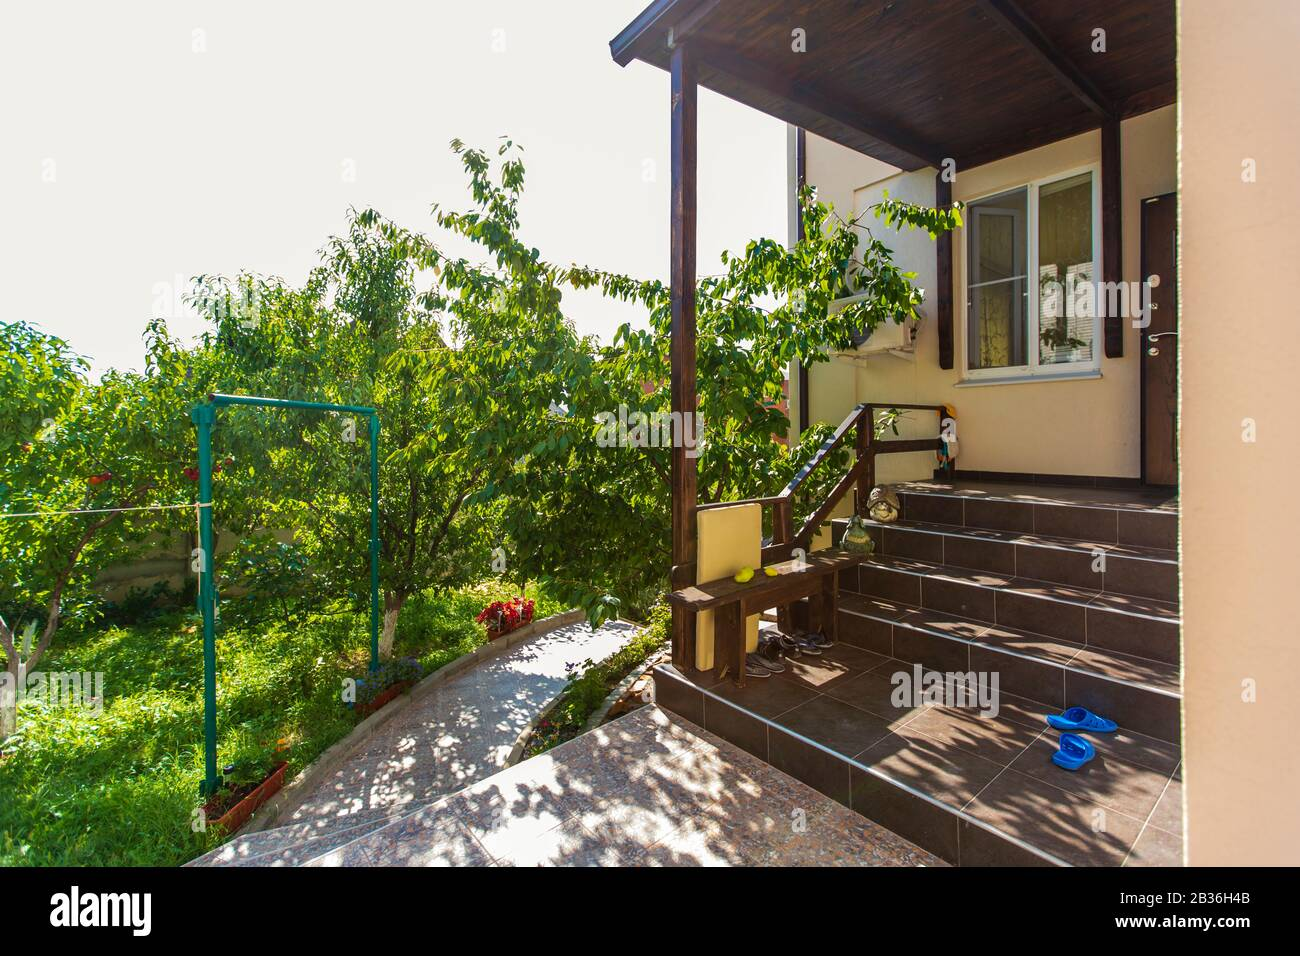 Porch Steps And Entrance To The Cottage In The Back Yard Of The House Canopy Over The Entrance Shoes On The Porch Backyard With Trees Sunny Day Stock Photo Alamy